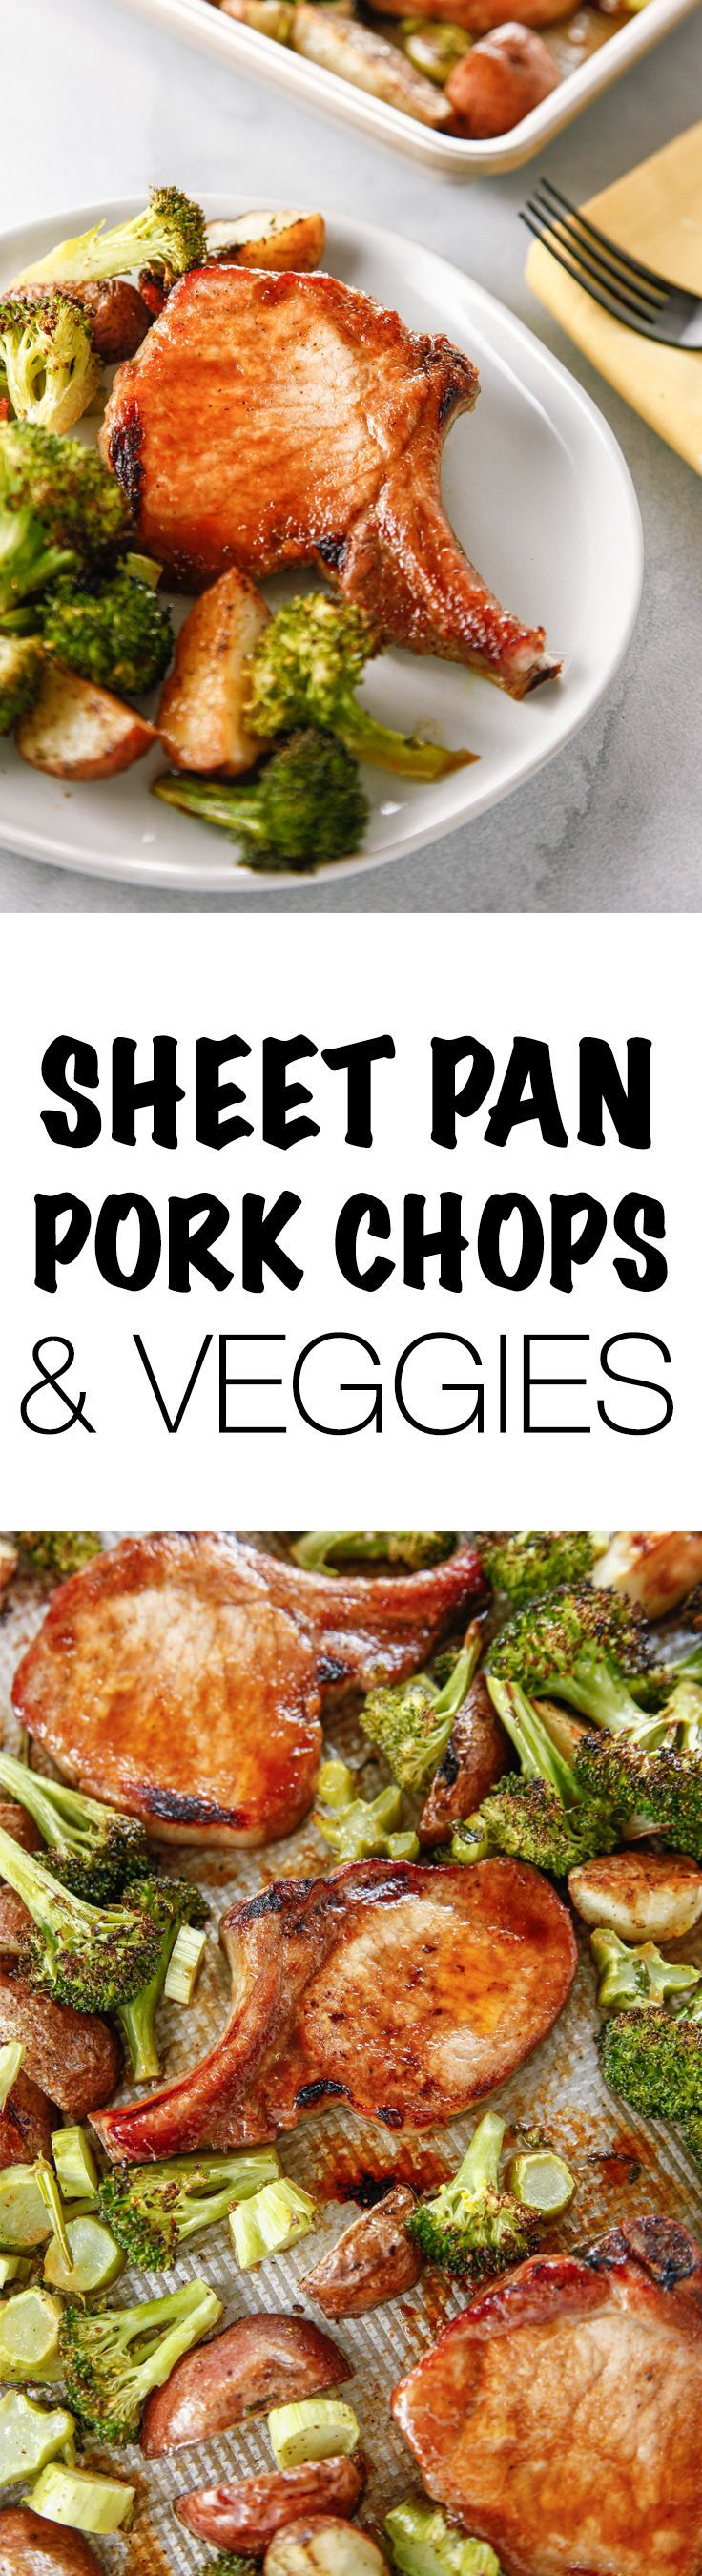 Crush this week by having an easy, healthy dinner ready in no time with this Sheet Pan Marinated Pork Chops and Veggies recipe! This meal is perfect for busy nights! One pan meals FTW! via @thebrooklyncook   #dinnerrecipes #dinner